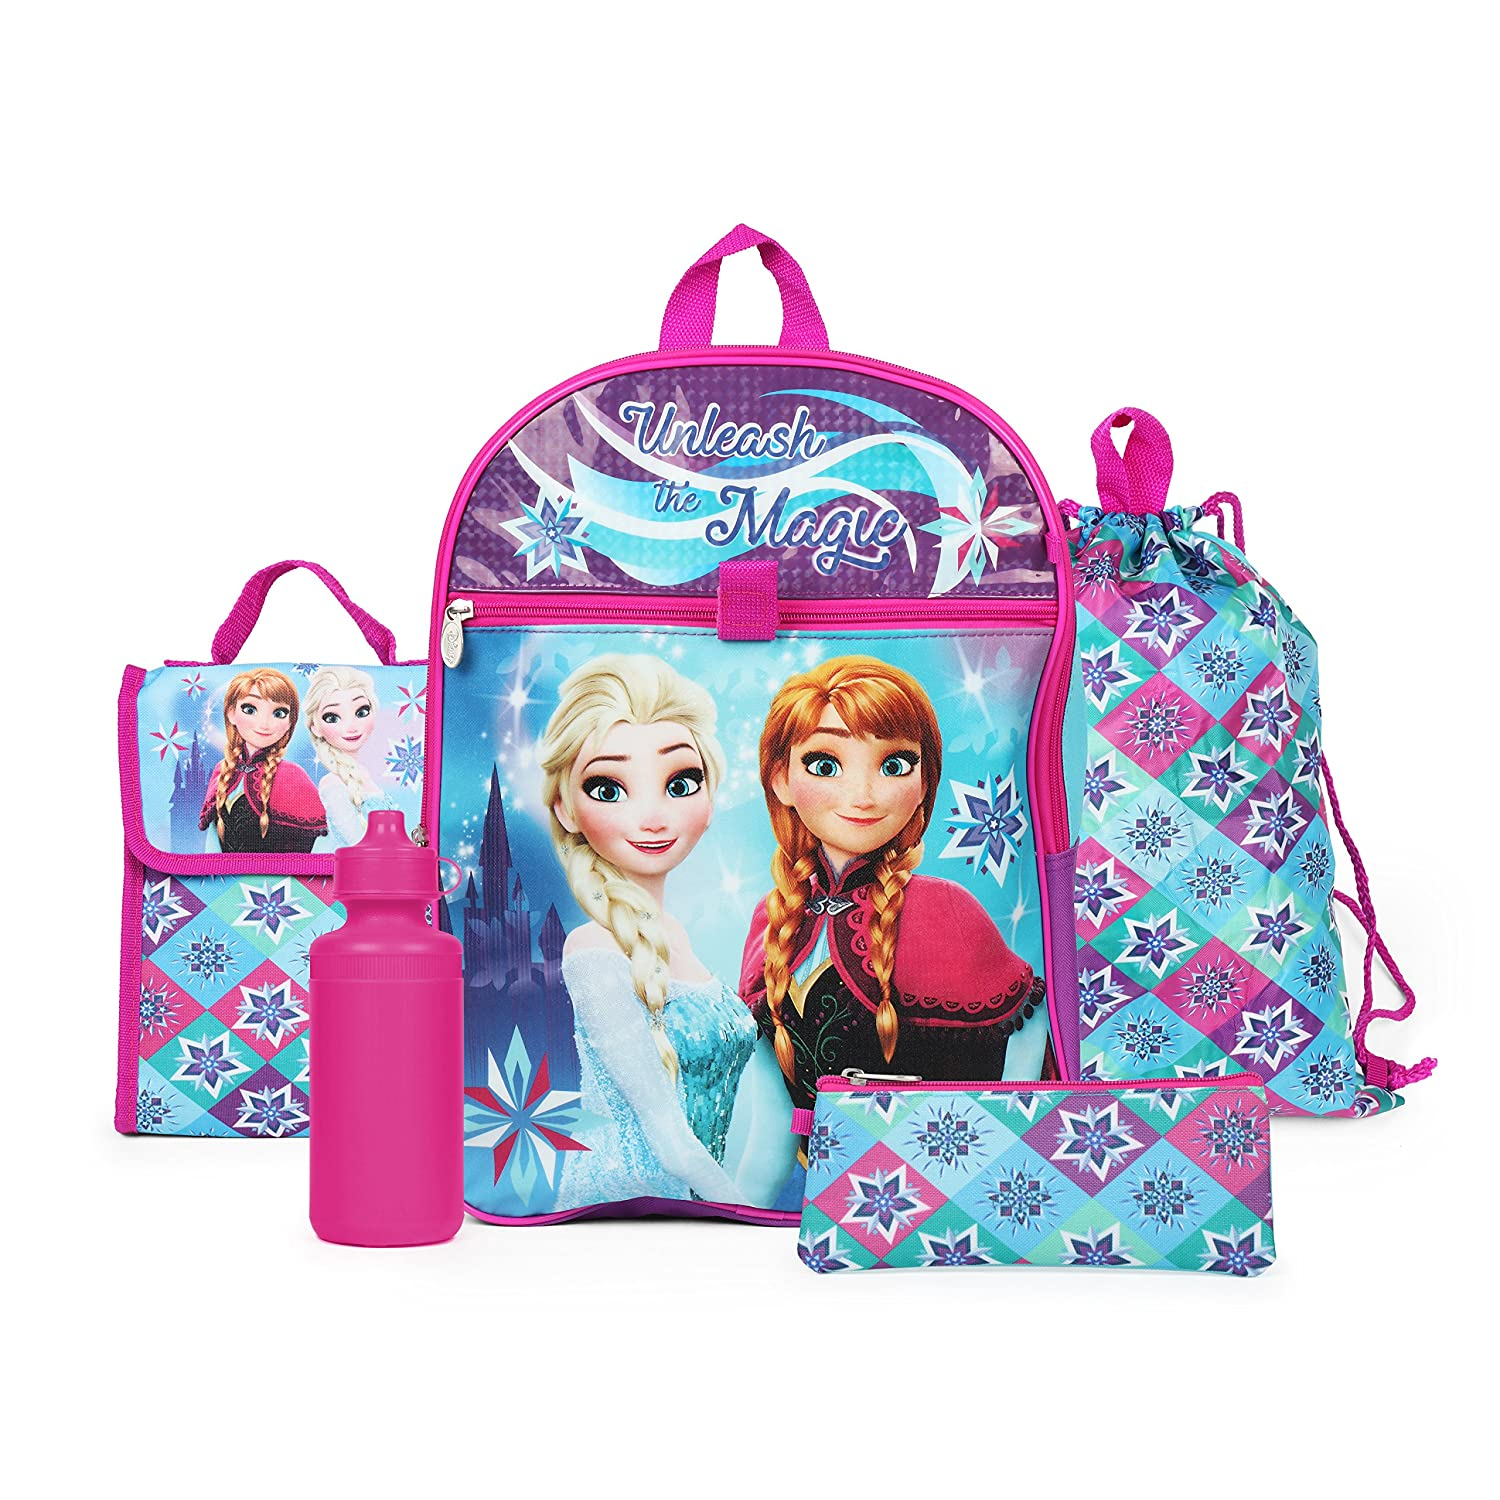 Disney Frozen Elsa and Anna Backpack 5 Piece Essentials Set